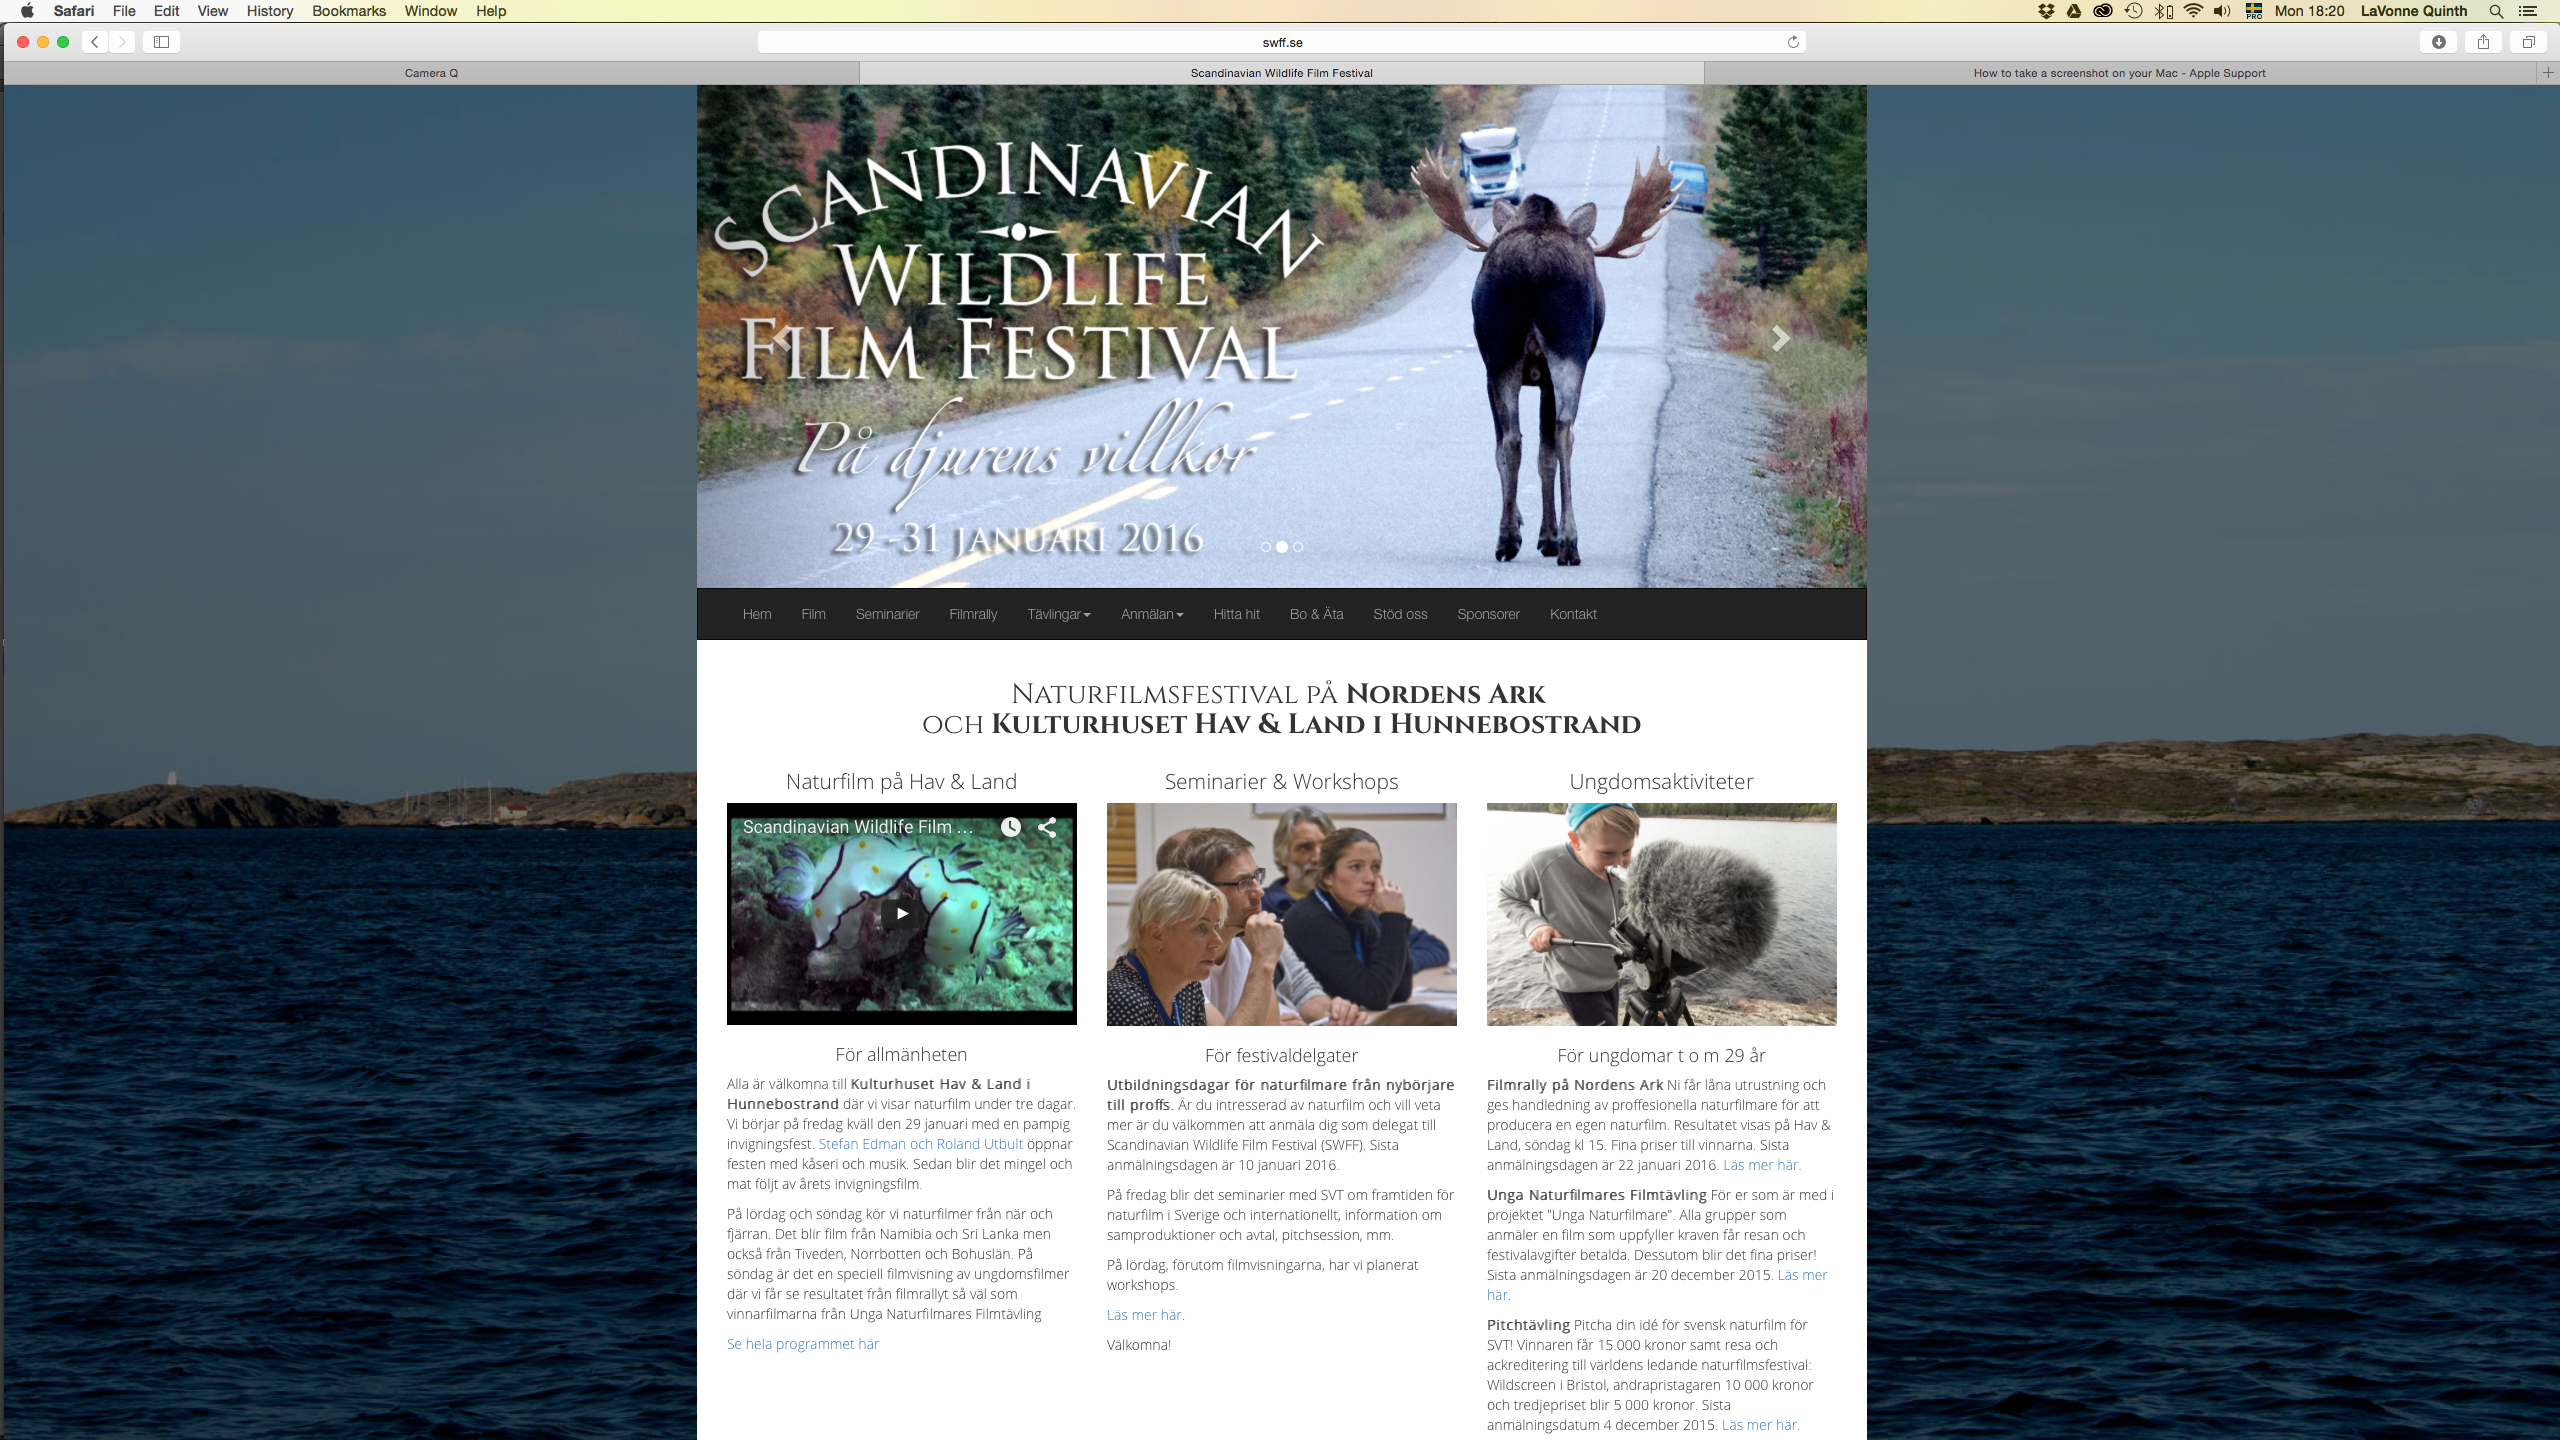 screenshot from www.swff.se - Scandinavian Wildlife Film Festival